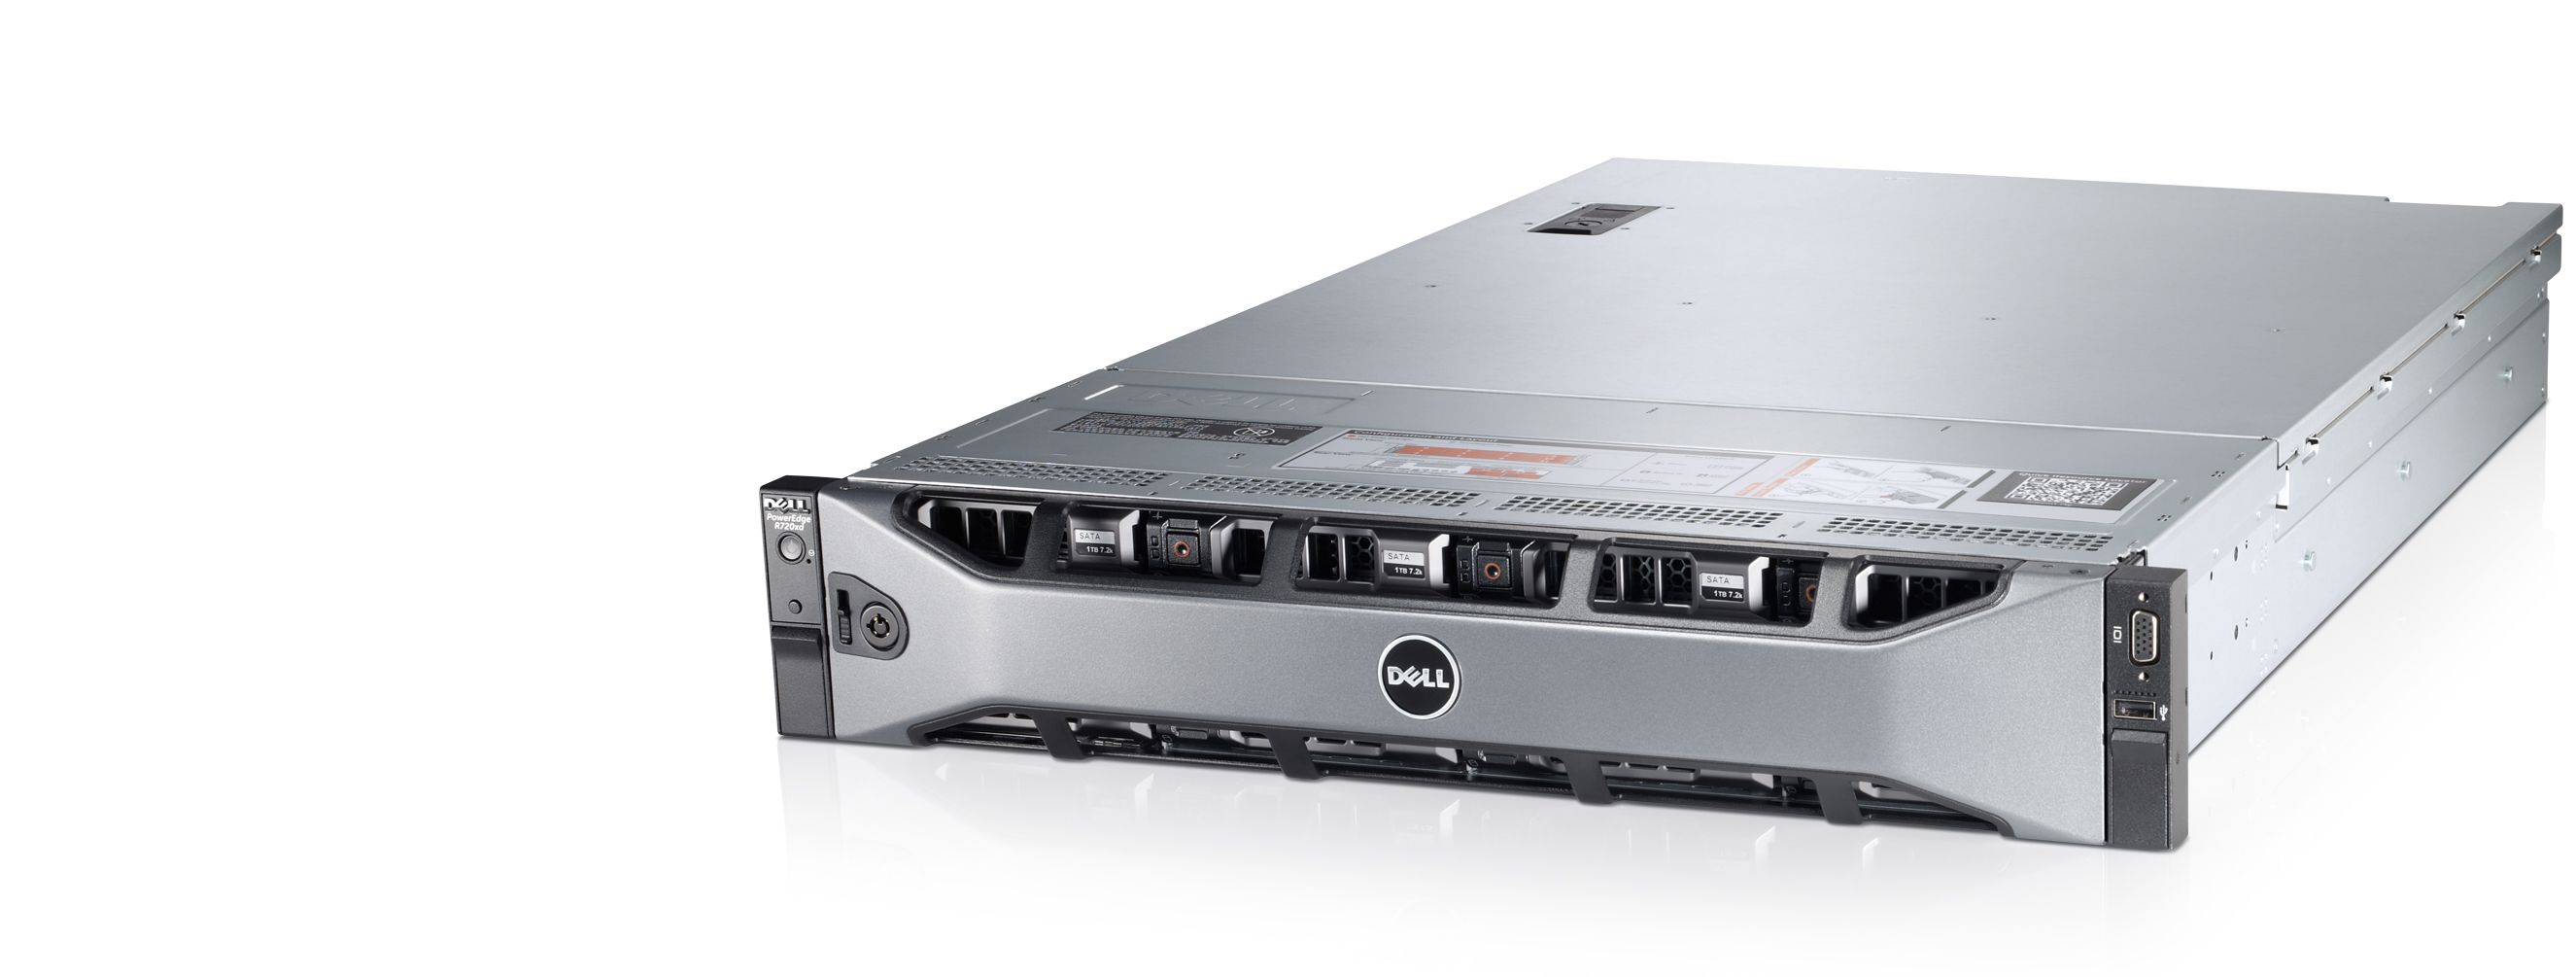 Dell PowerEdge R720 XD Server Chassis 3.5